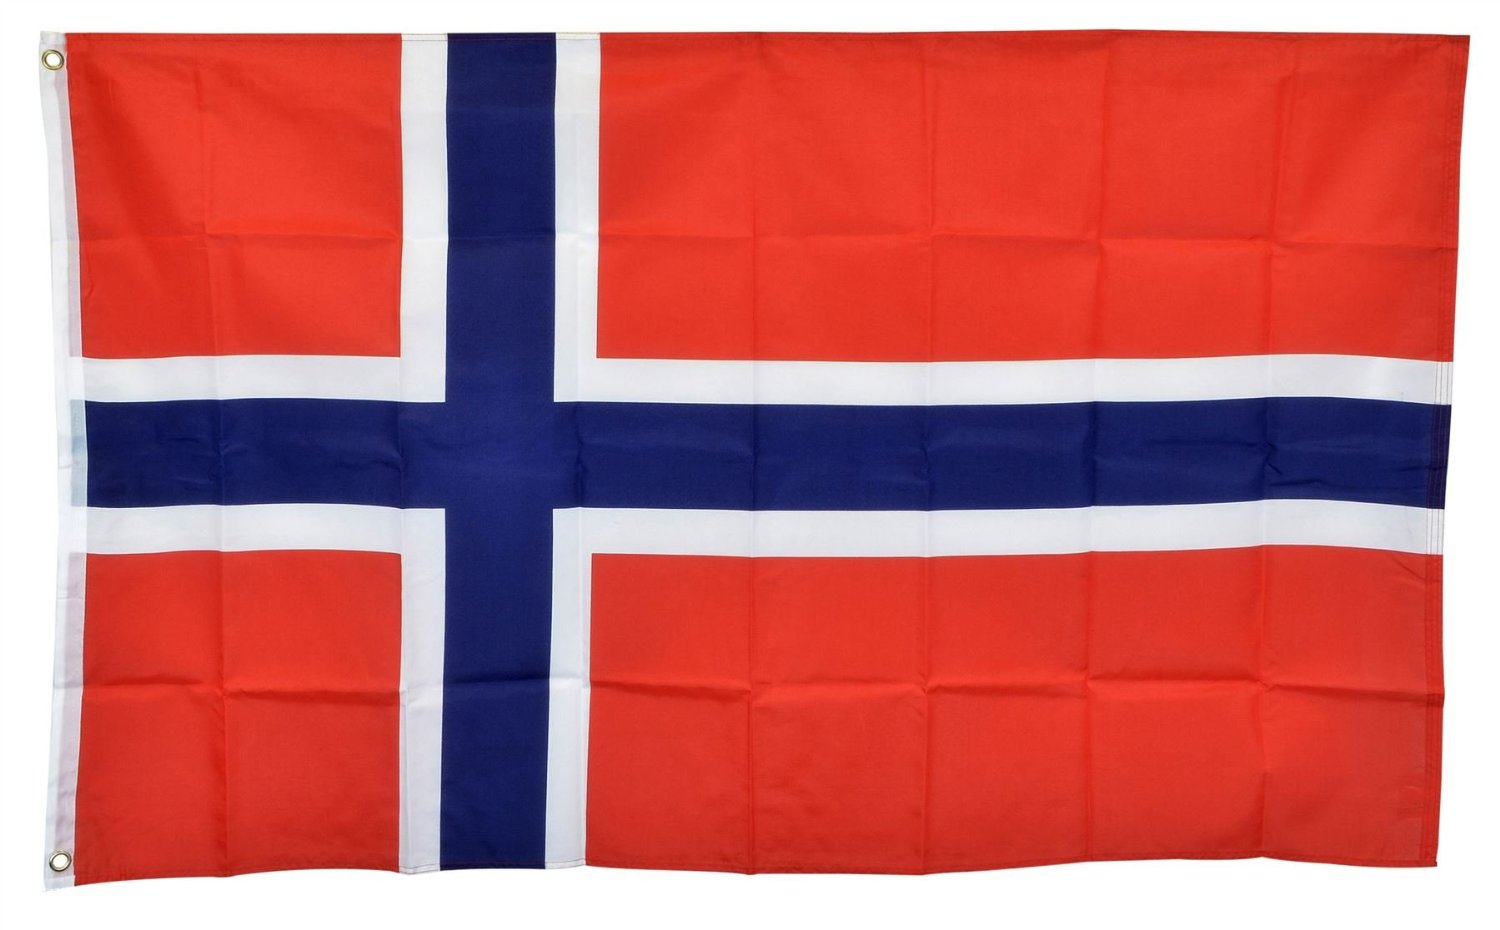 Shop72 Printed Polyester Flags - National Countries - 100D-3X5 - Norway